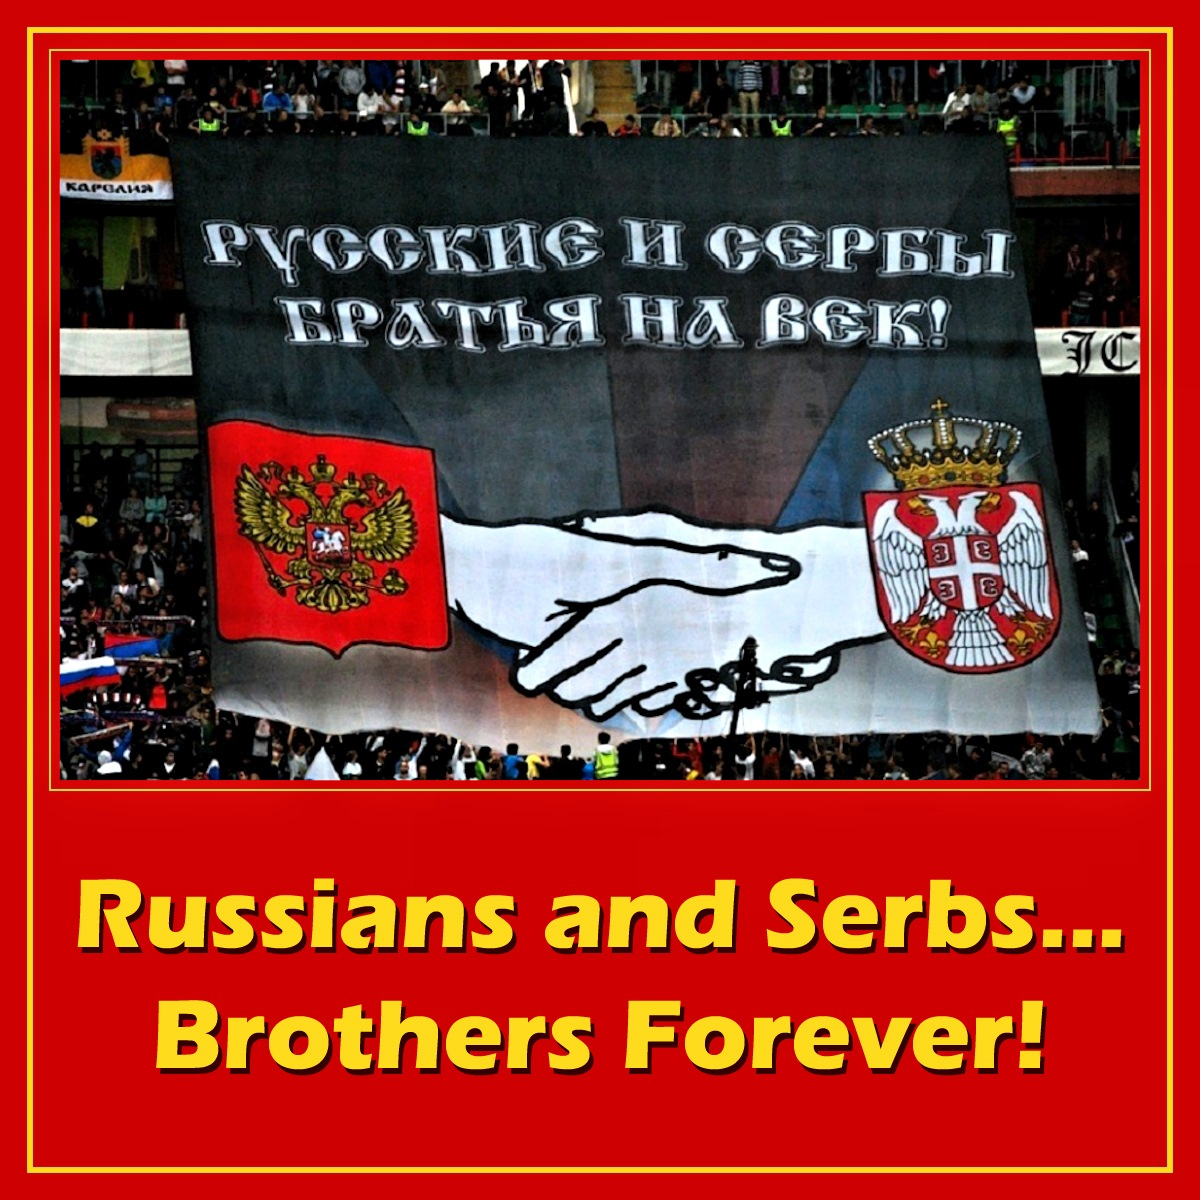 00 Russians and Serbs... Brothers Forever! 16.08.14